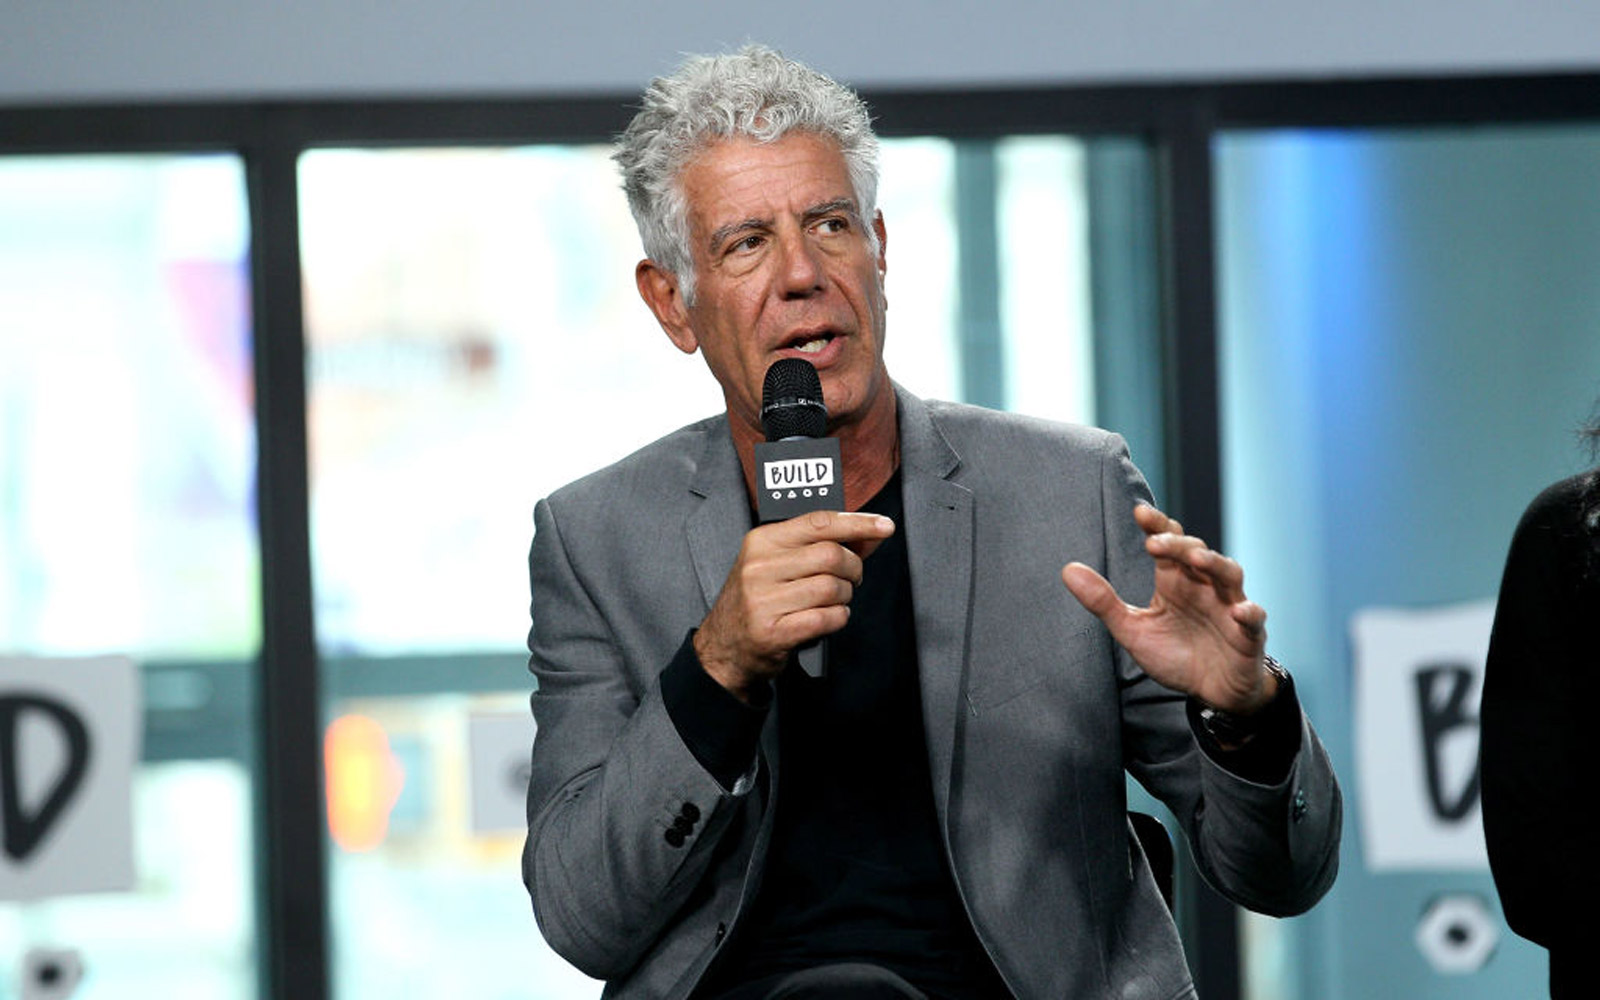 Anthony Bourdain Says He's on Television for 'Selfish' Reasons